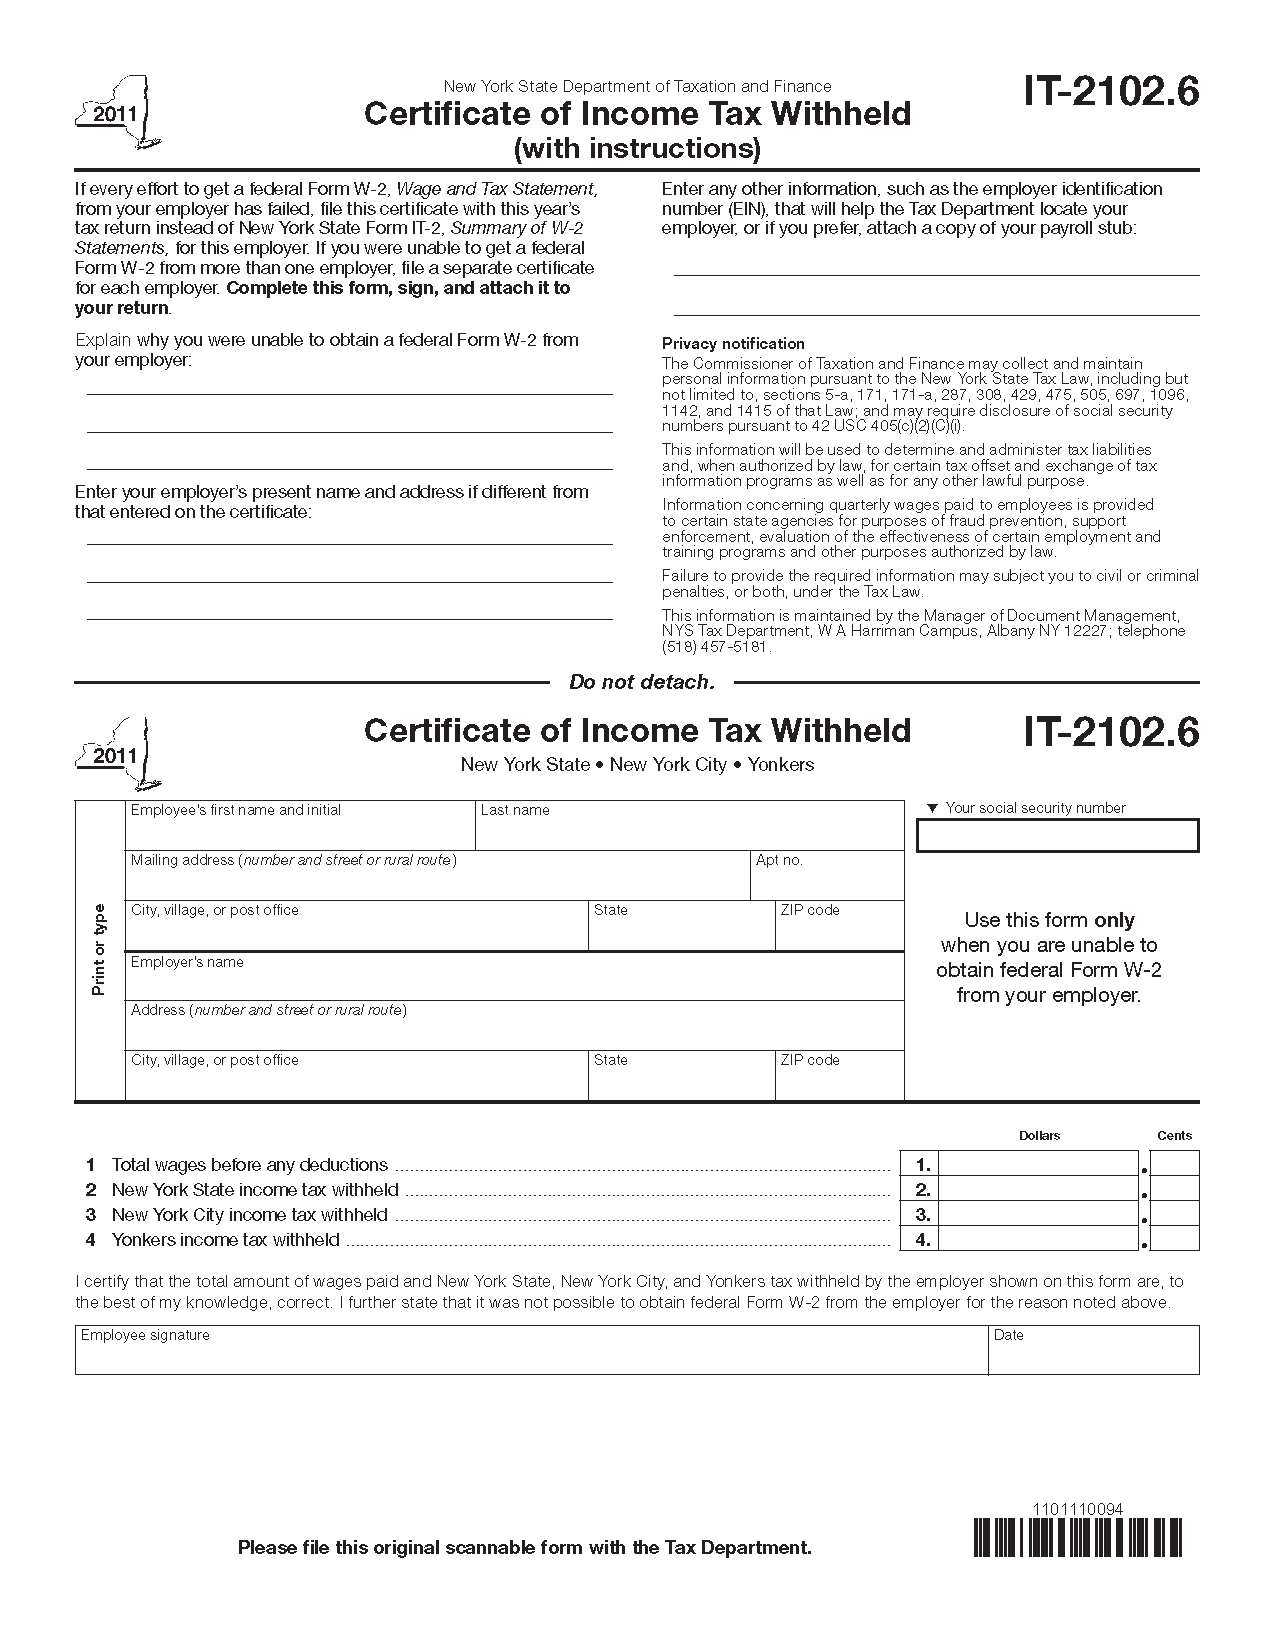 Form IT-2102.6 (Fill-in) Certificate Of Income Tax Withheld